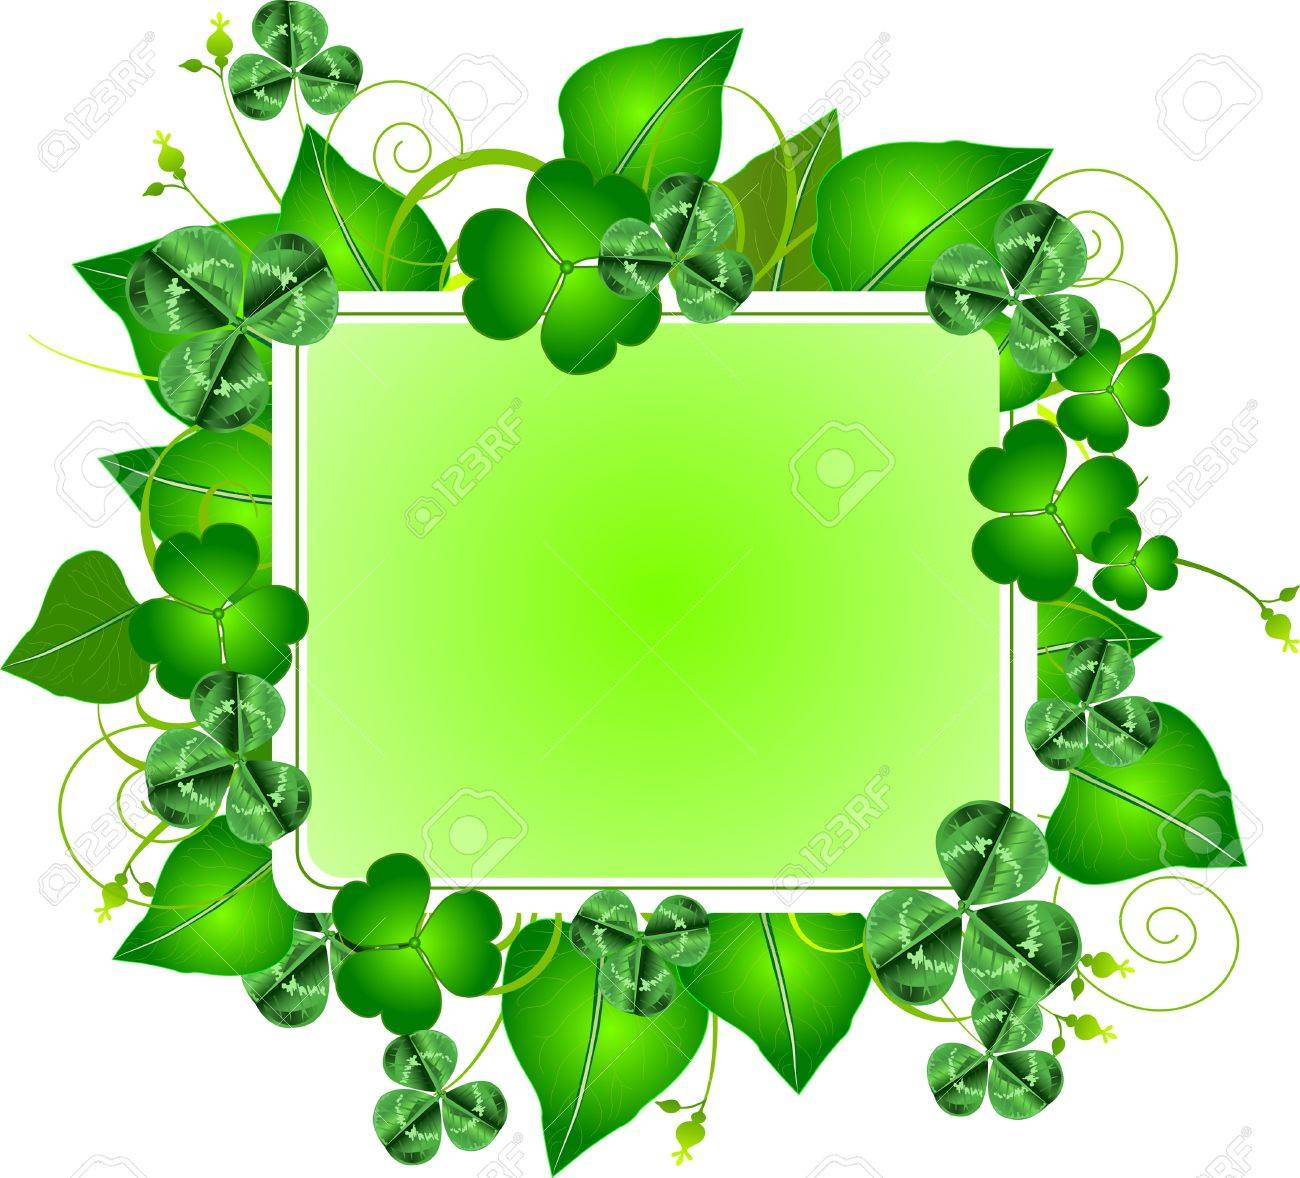 three leafed clover frame for st patricks day royalty free